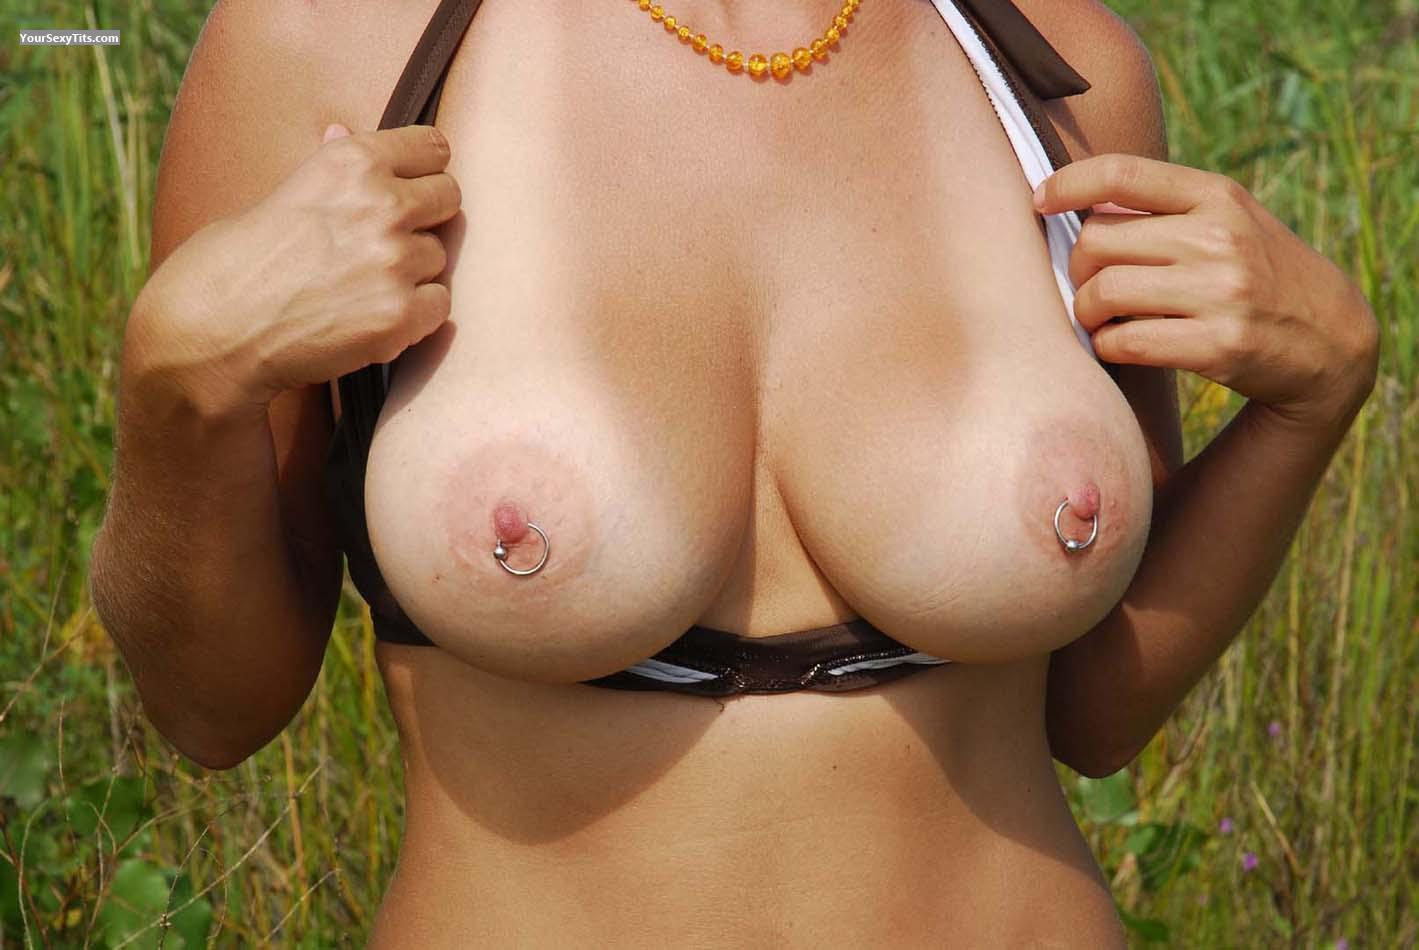 Tit Flash: Very Big Tits - Sensitive from United StatesPierced Nipples